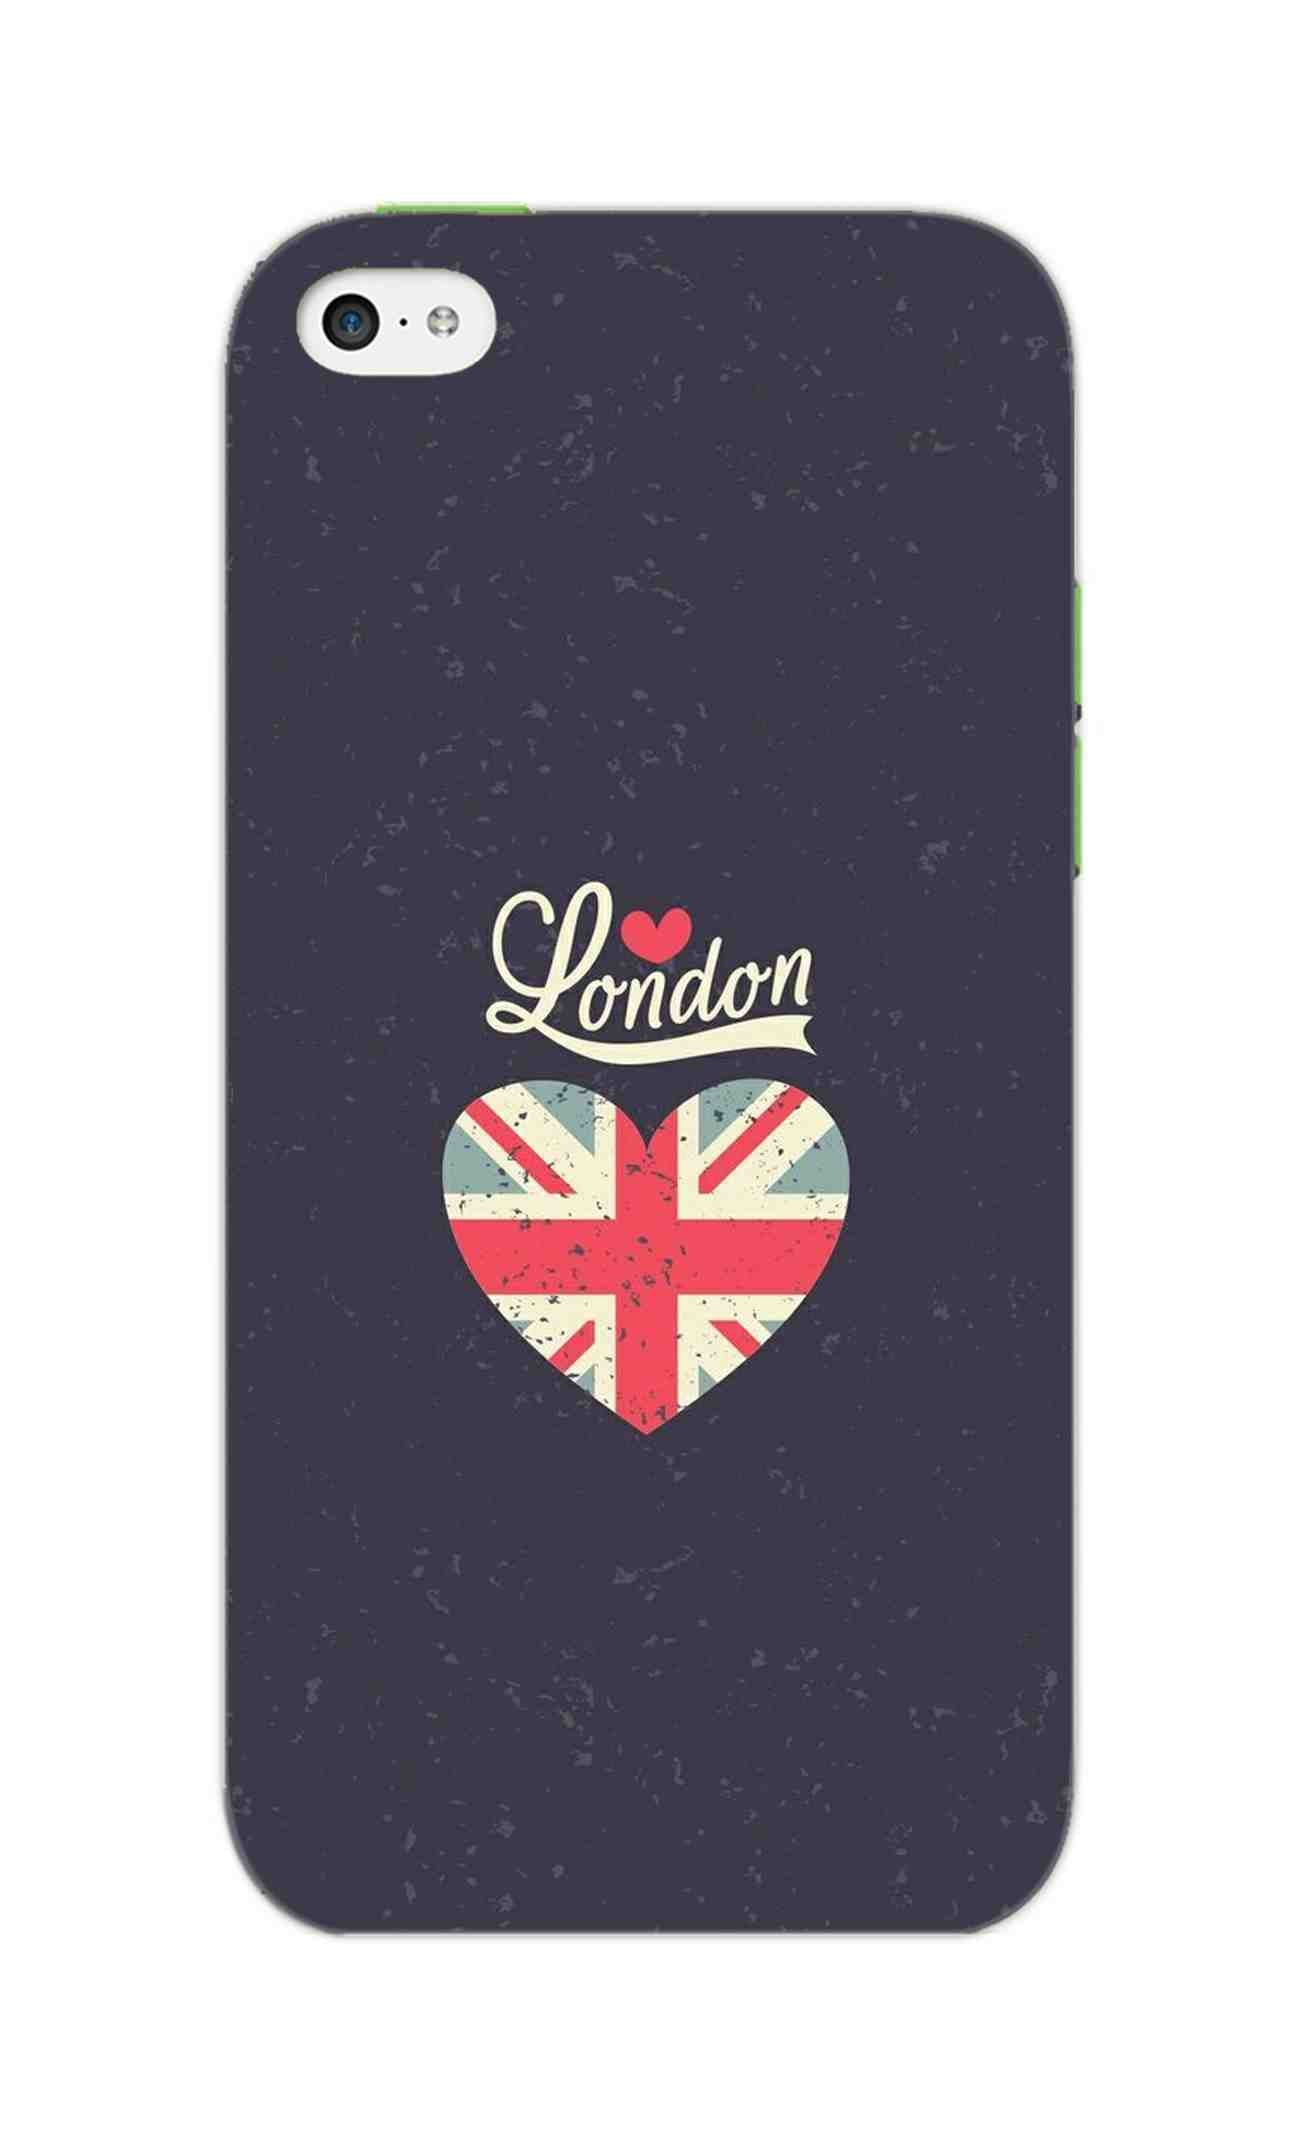 I Love London Typography Art For Artist iPhone 5S Mobile Cover Case - MADANYU